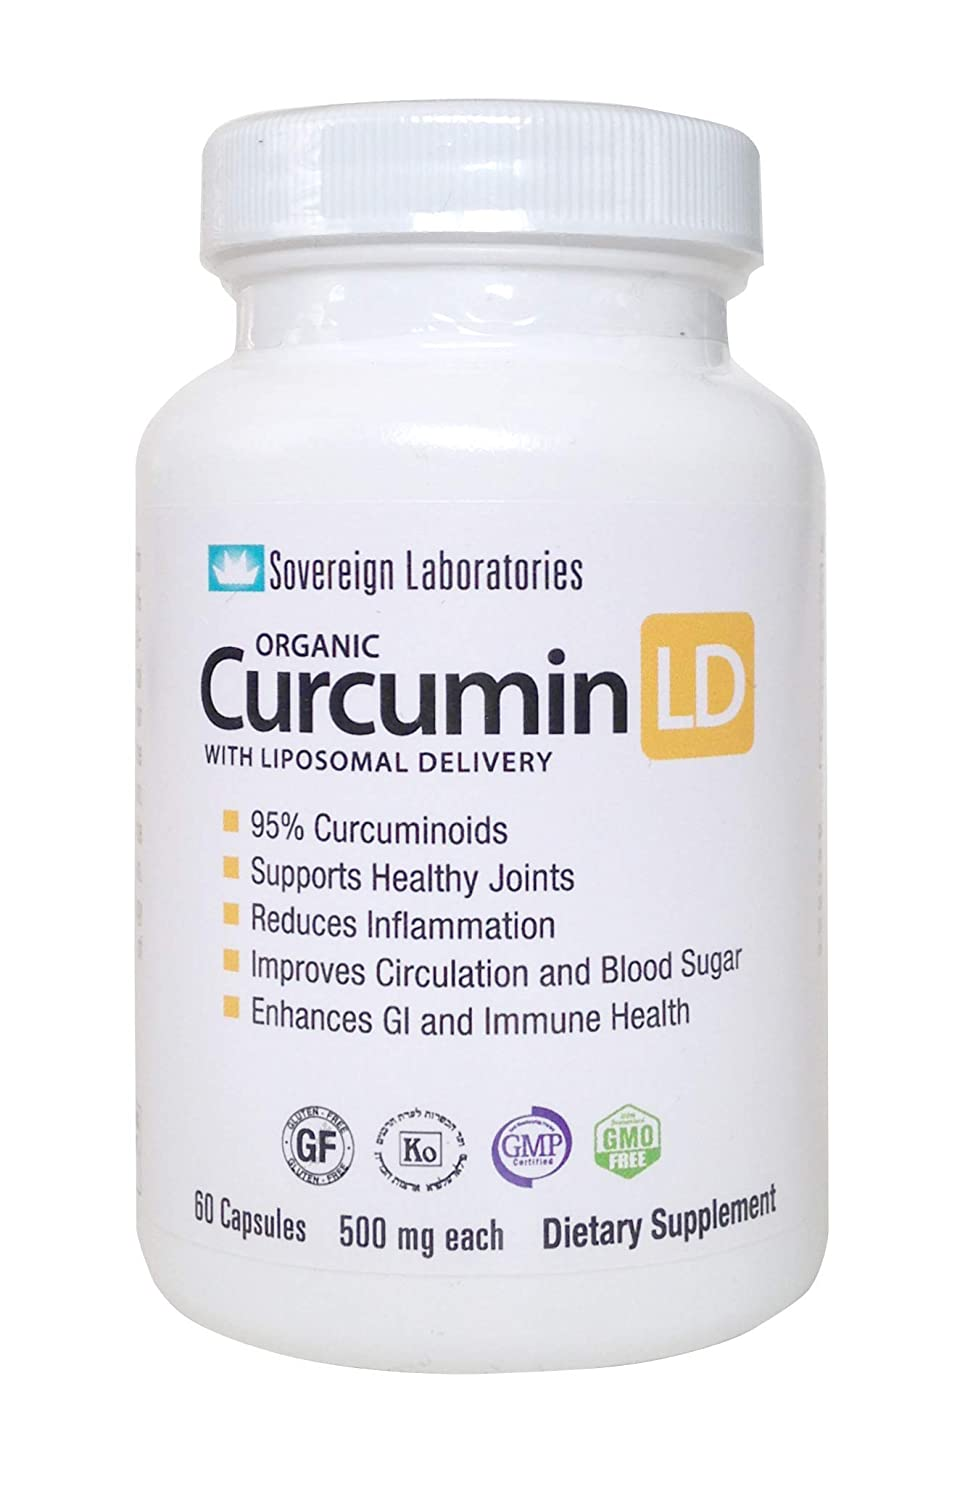 Organic Curcumin-LD – 95 Curcumonoids 60pc 500mg Capsules with Proprietary Liposolmal For 4x More Bioactive Absorption. Non GMO Veggie Caps. Supports Healthy Joints, Anti Inflammatory, Bioperine Free